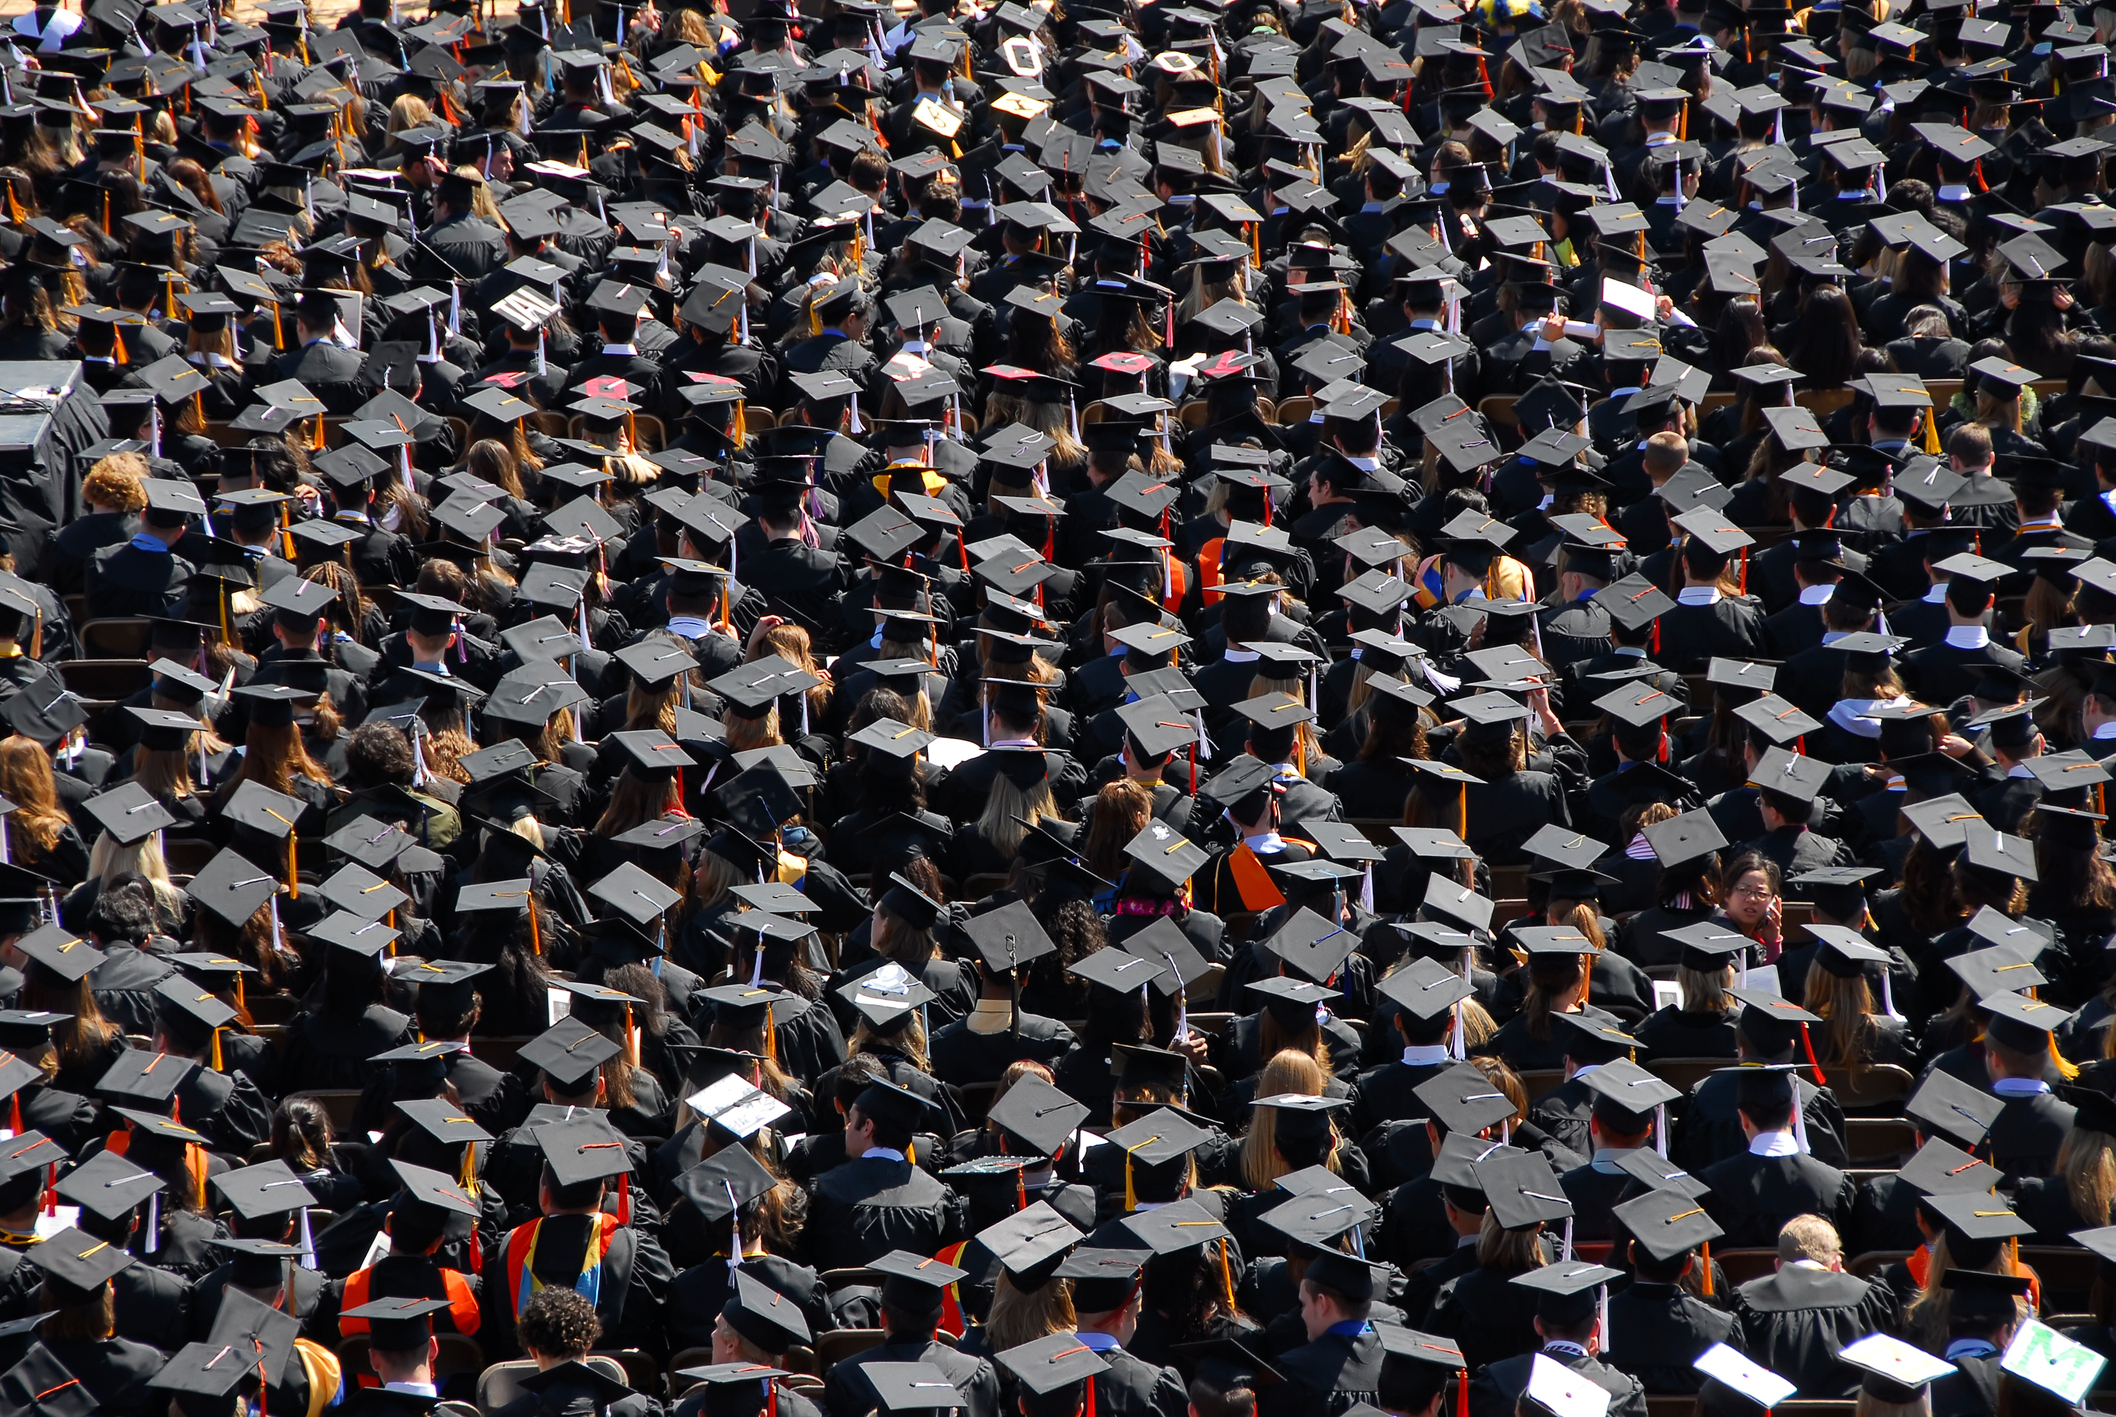 At the 2007 Spring Commencement, Ann Arbor, University of Michigan, USA.